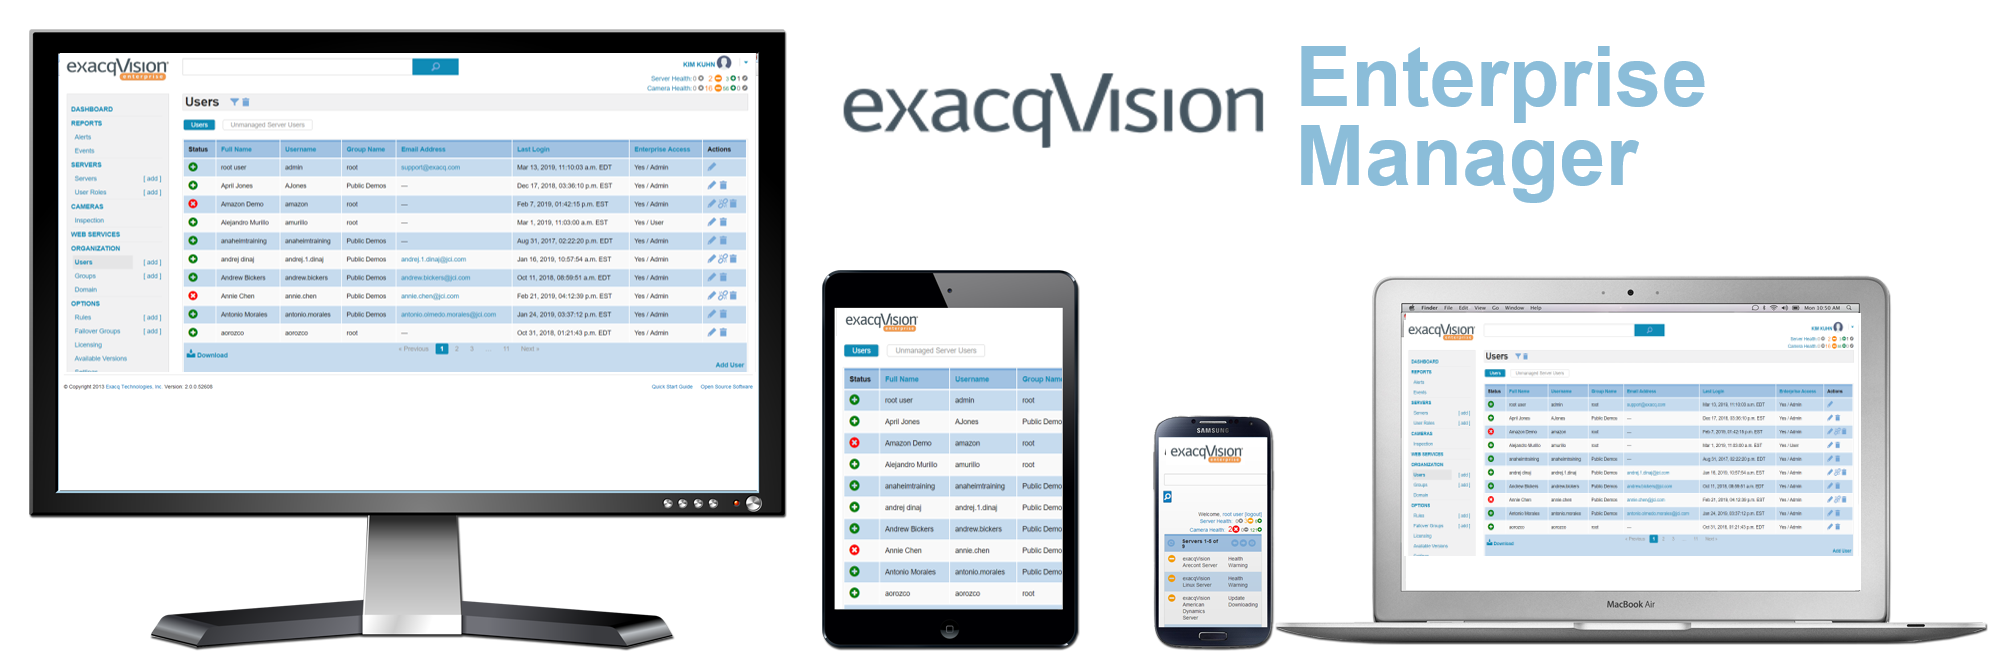 exacqVision Enterprise System Manager to monitor IP camera and network video recorder health